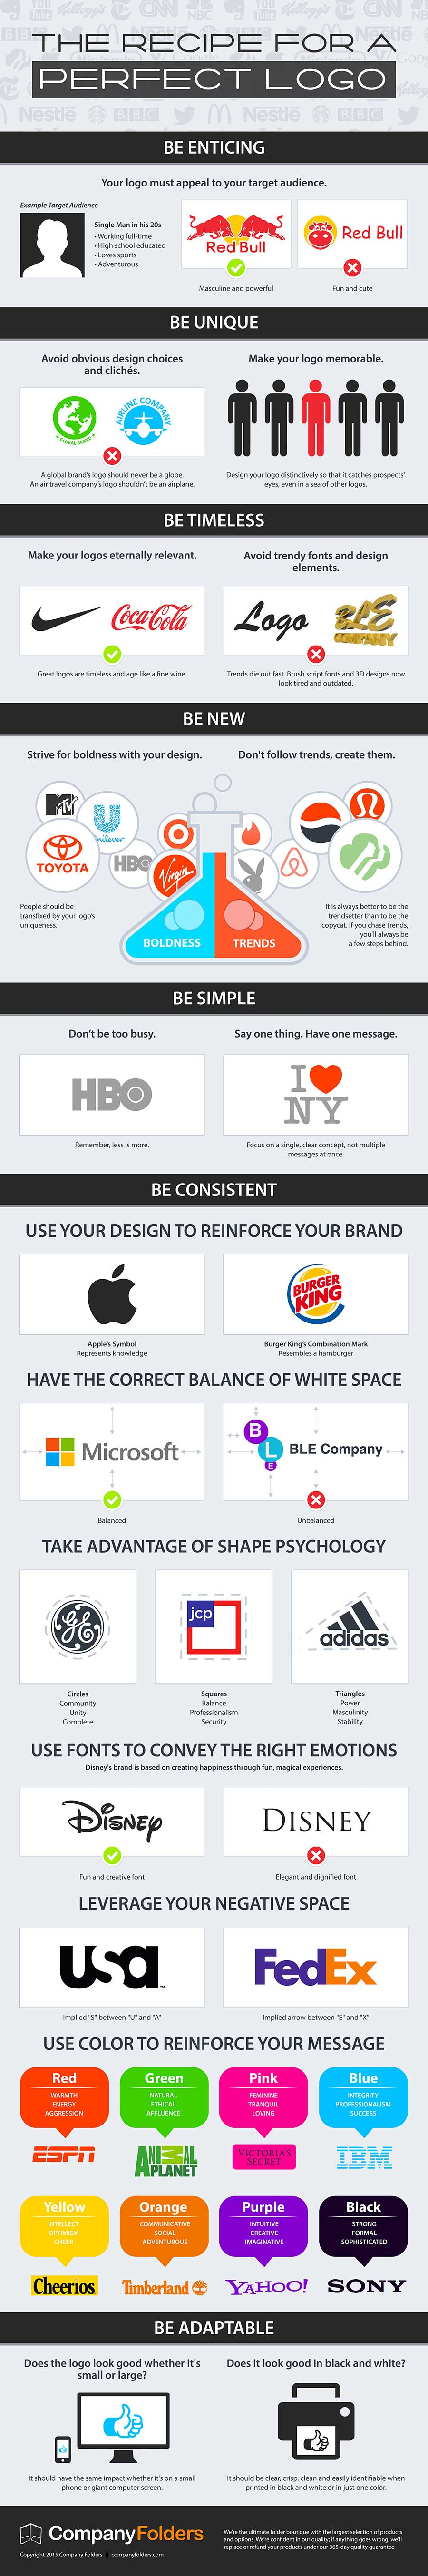 How to create the perfect logo design